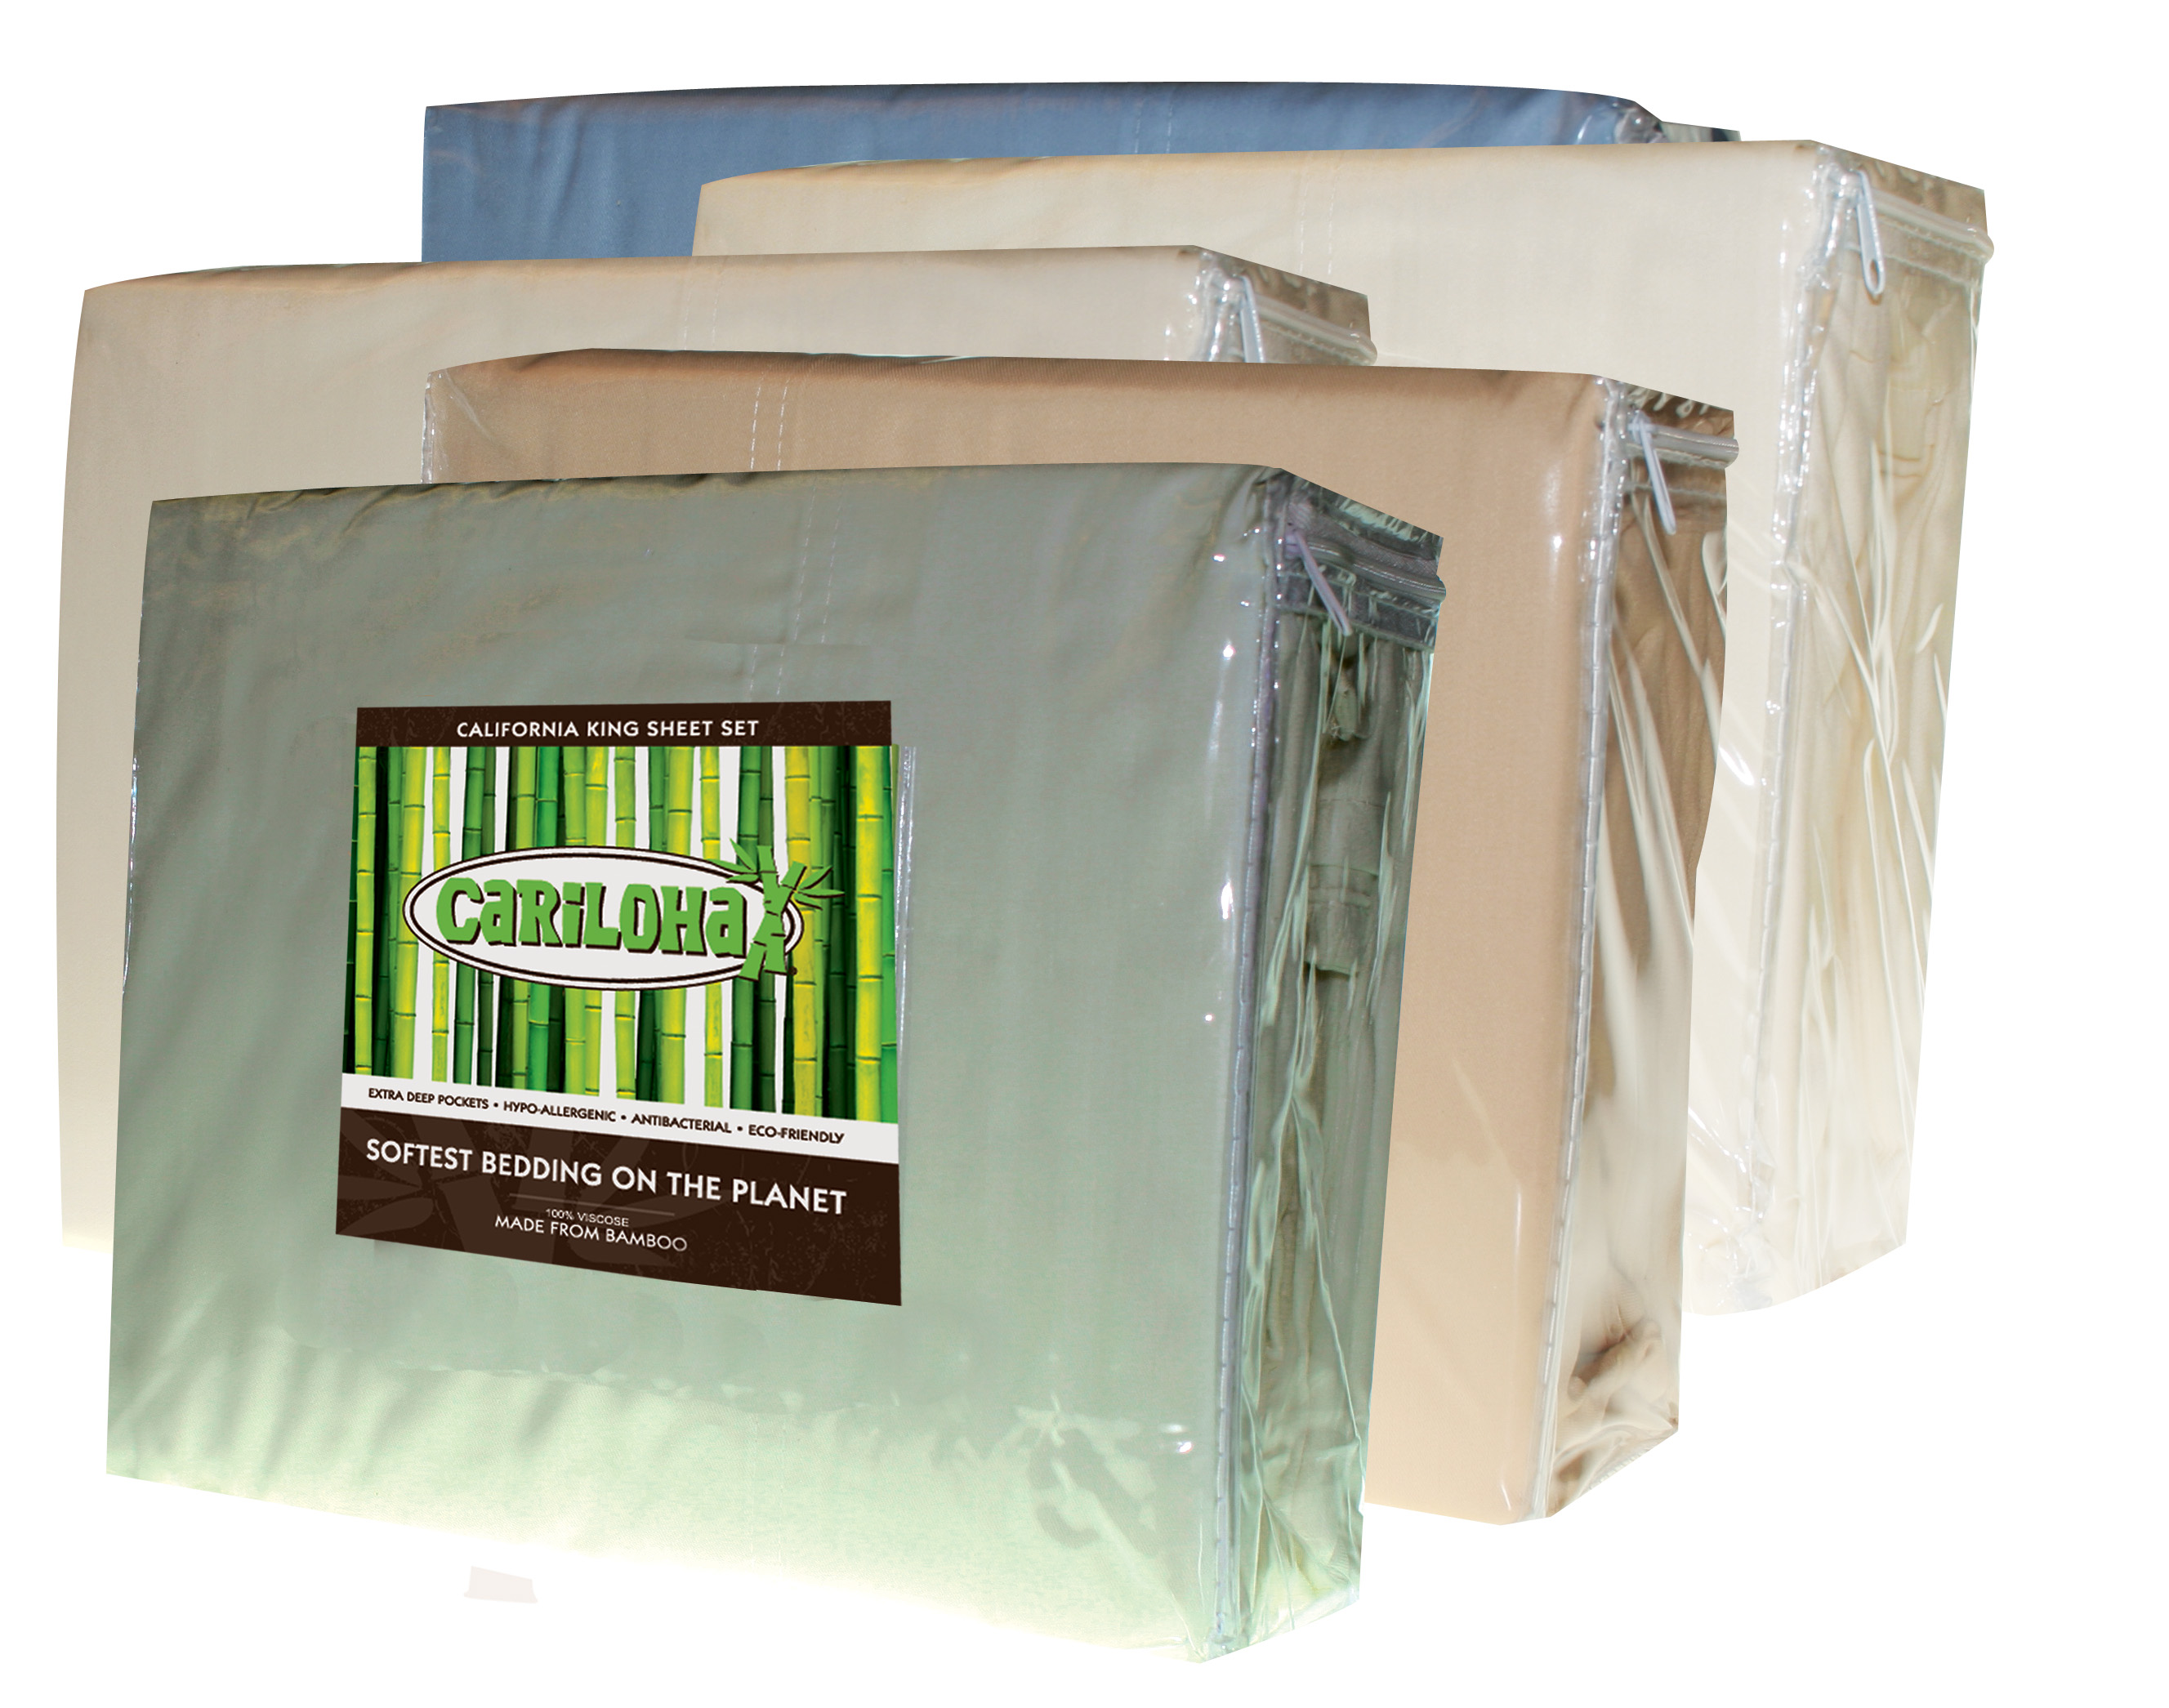 Bamboo Bed Sheets Part Of Healthy Lifestyle